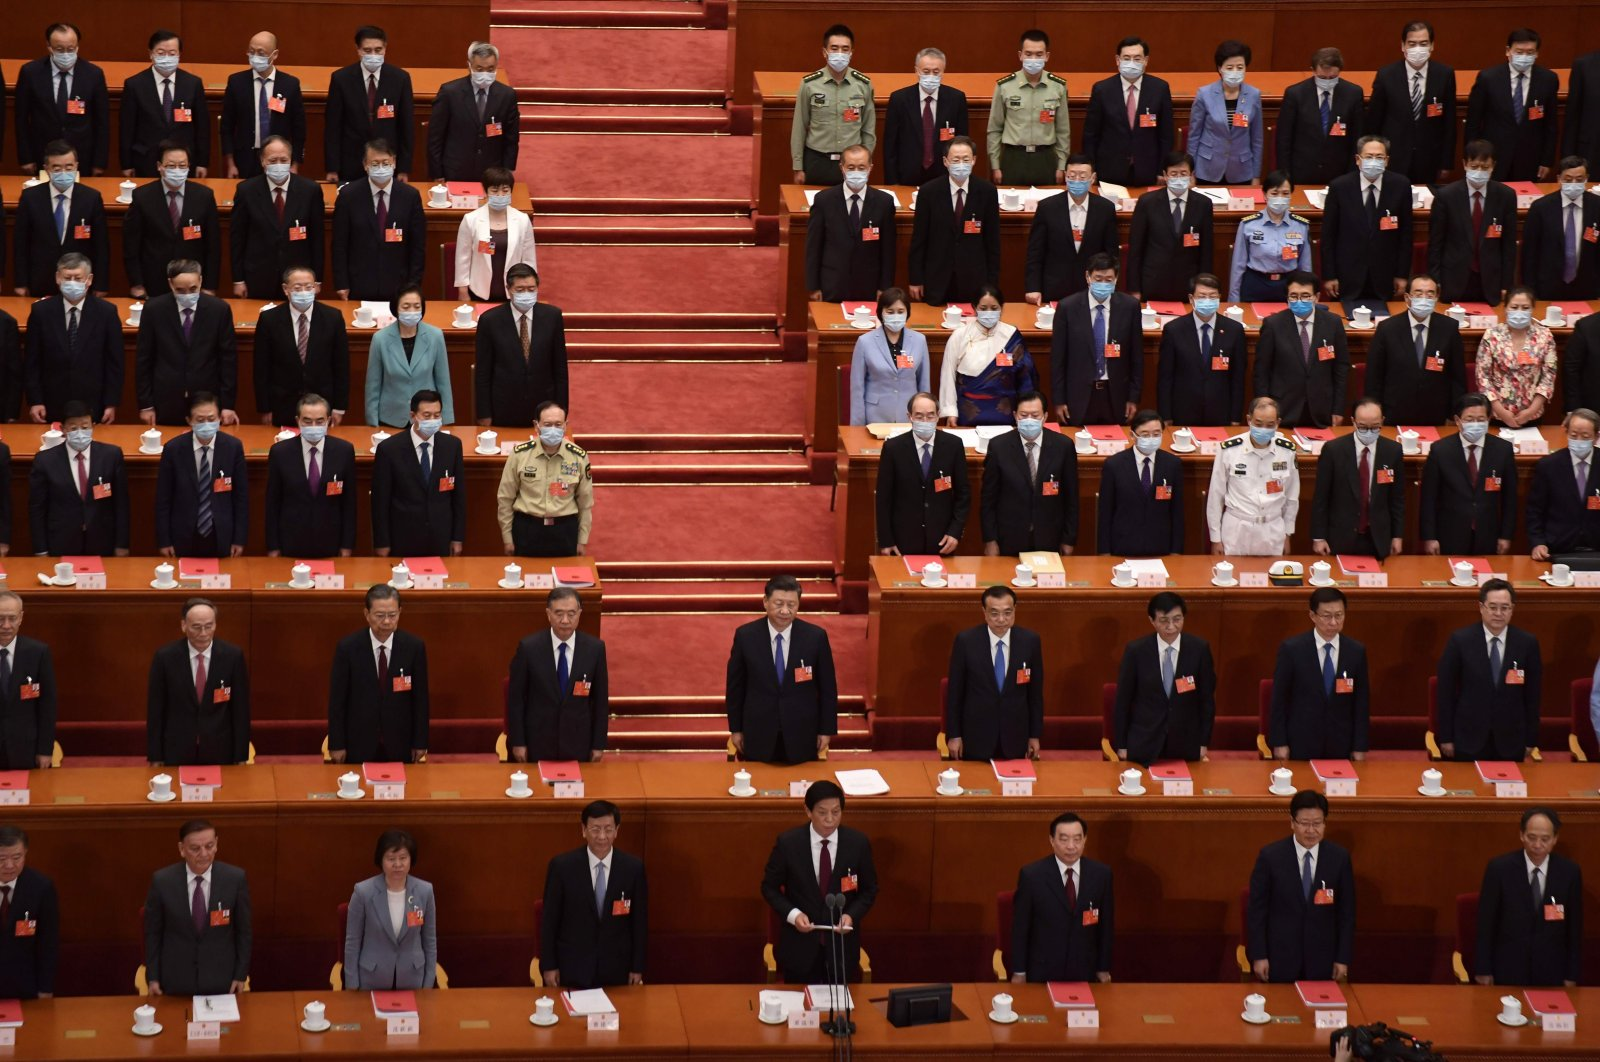 Chinese President Xi Jinping (C) stands with other Chinese leaders at the end of the closing session of the National People's Congress at the Great Hall of the People, Beijing, May 28, 2020. (AFP Photo)